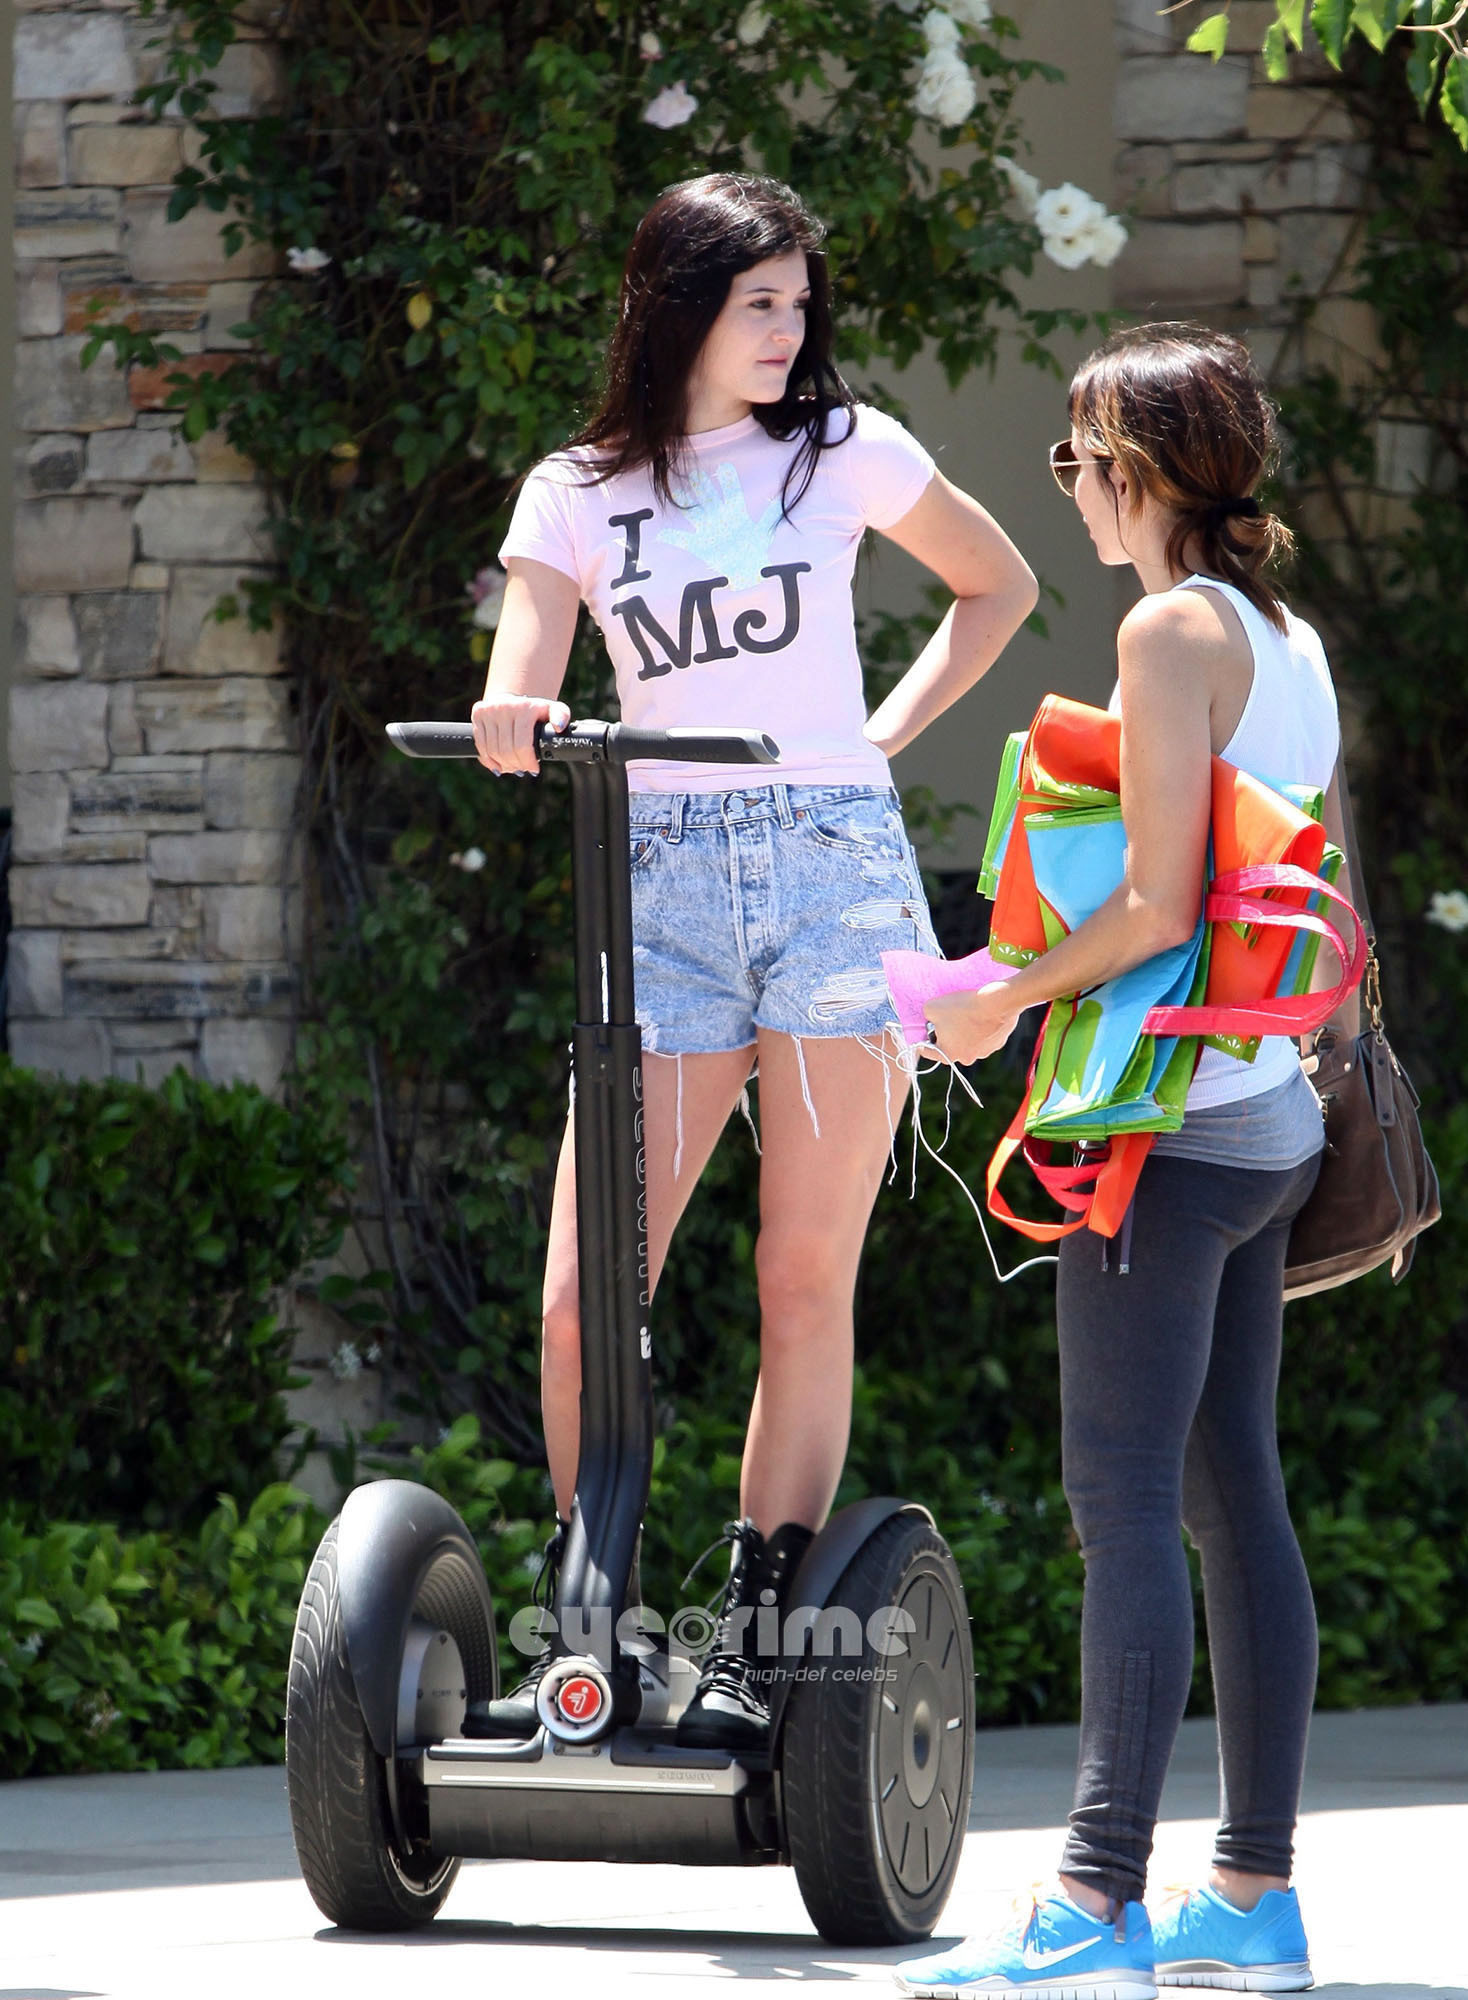 Kylie Jenner got her michael jackson चोटी, शीर्ष on and on segway in calabasas